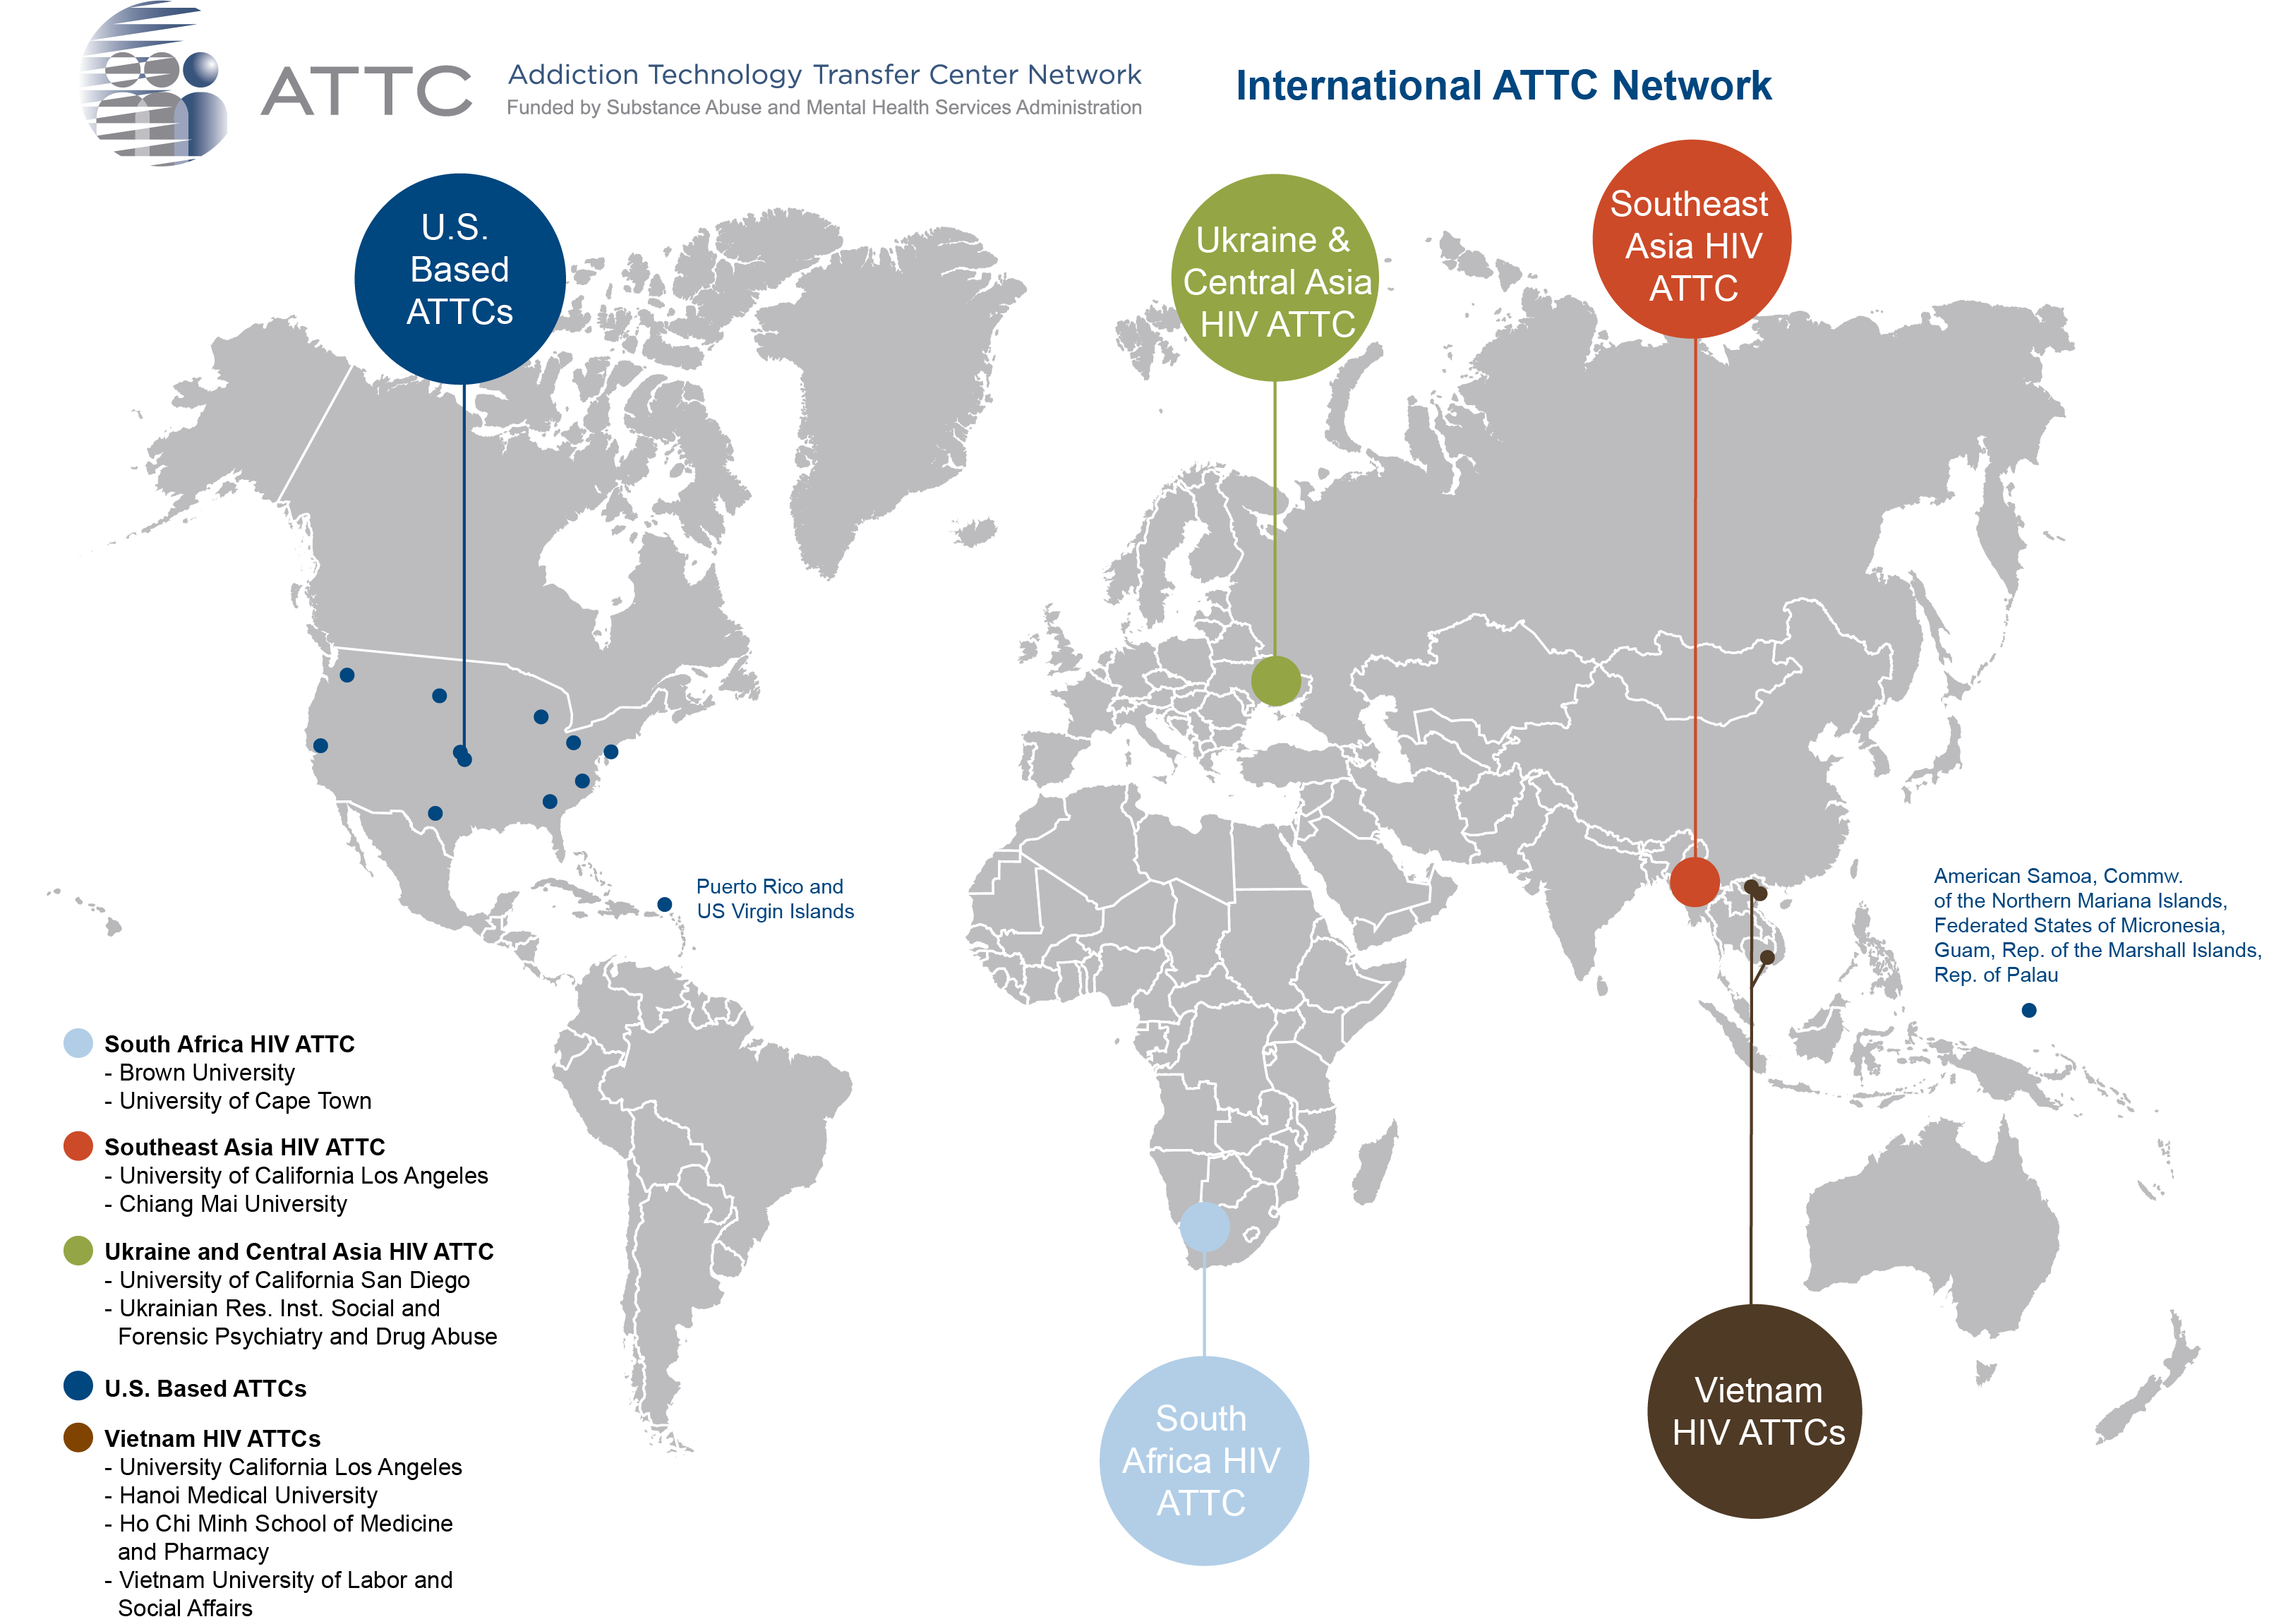 Map of International-HIV ATTCs